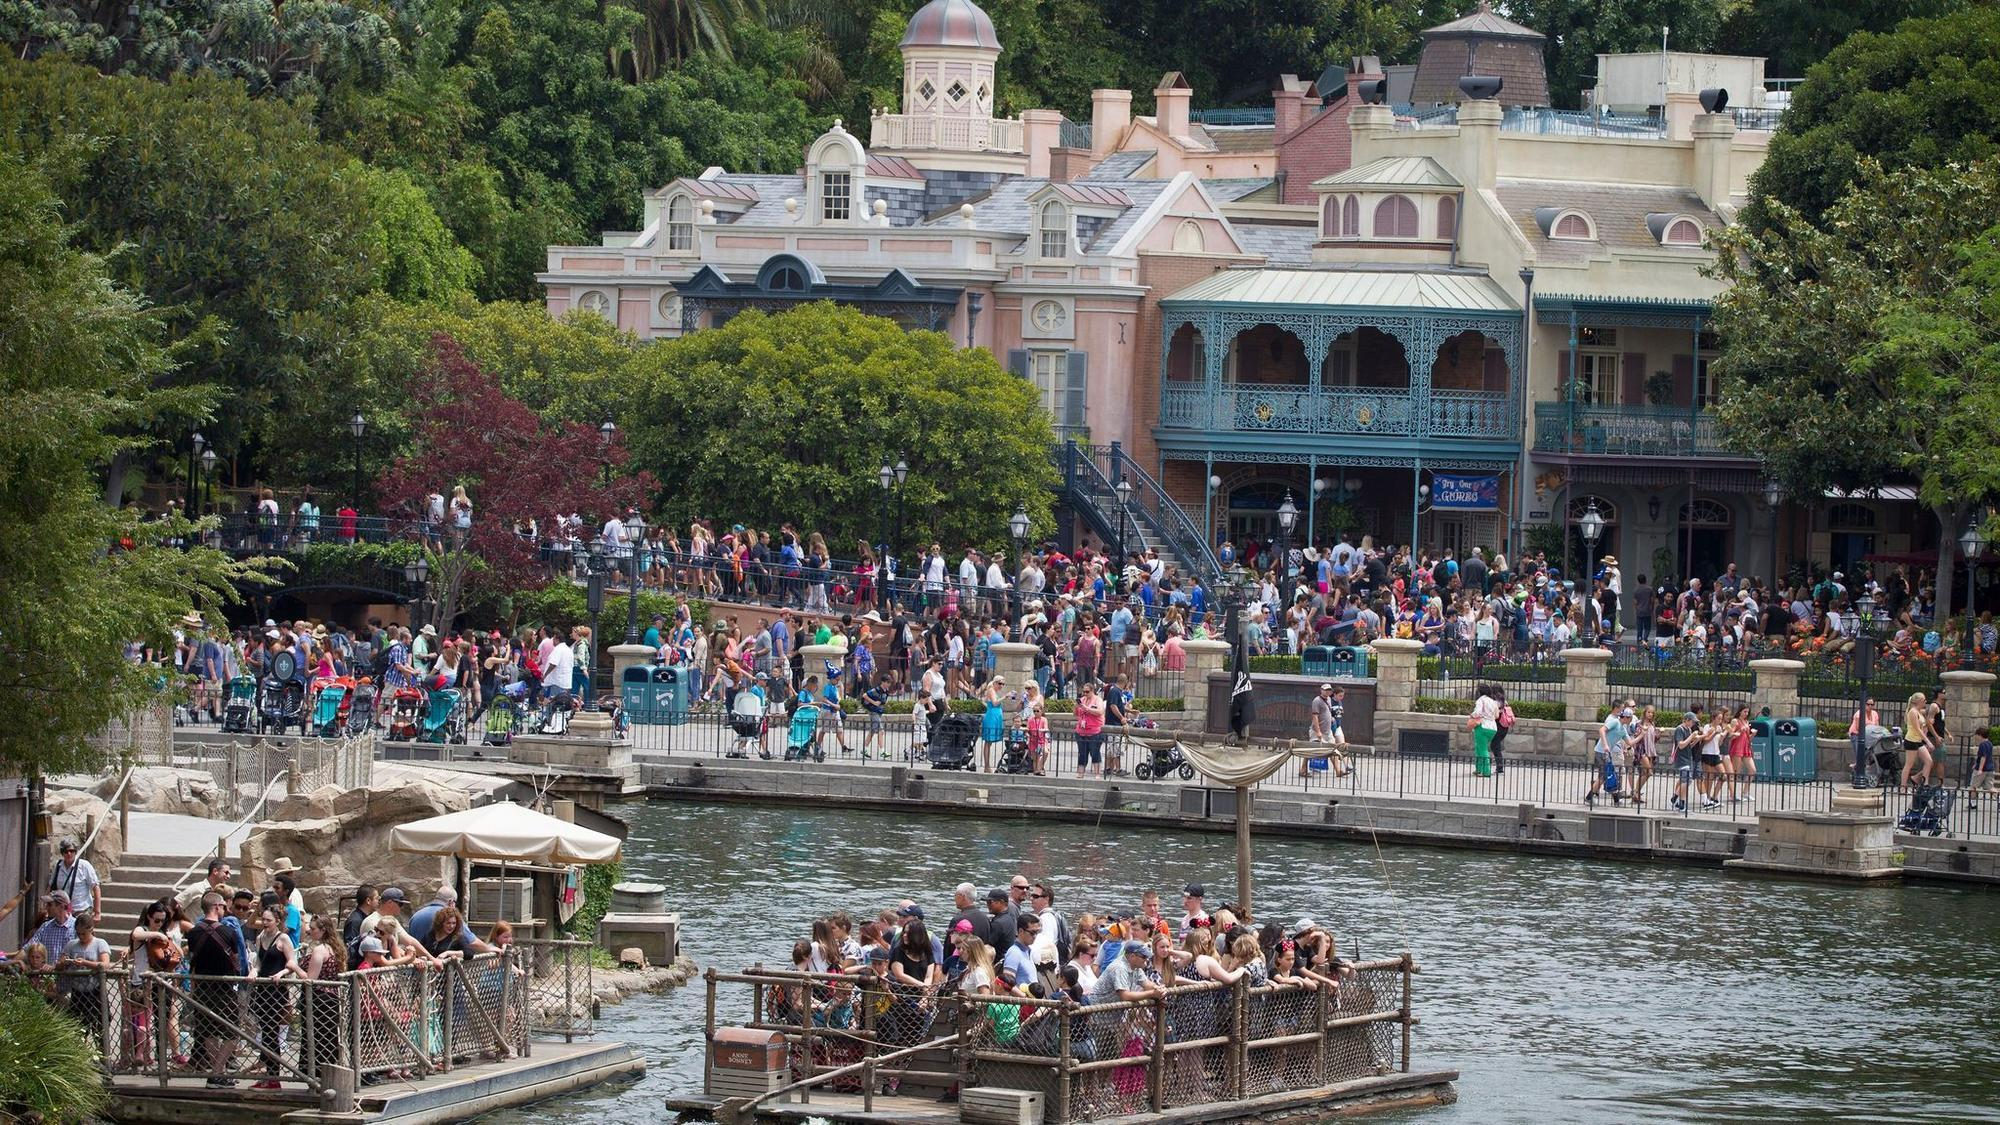 Image of Tom Sawyer Island at Disneyland